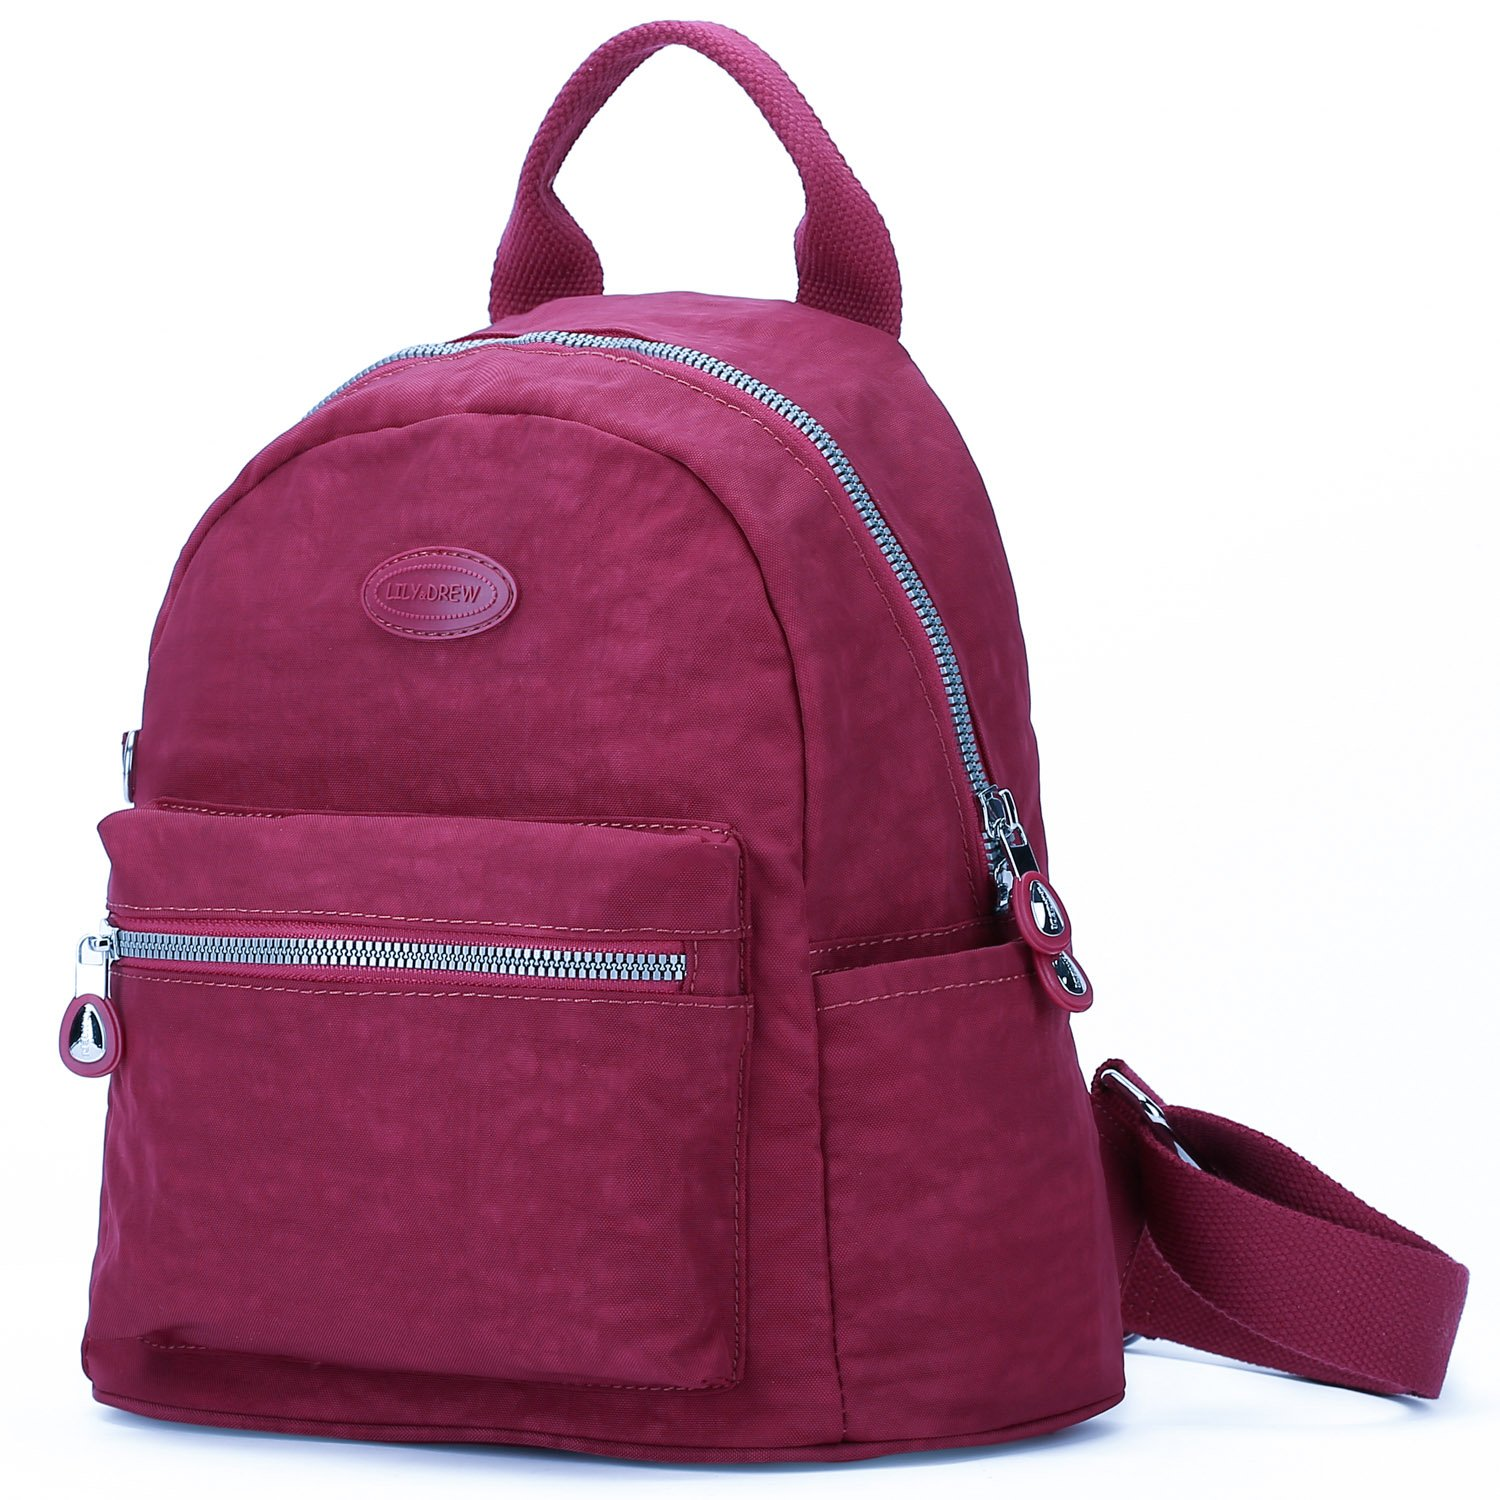 Lily & Drew Nylon Casual Travel Daypack Backpack Purse